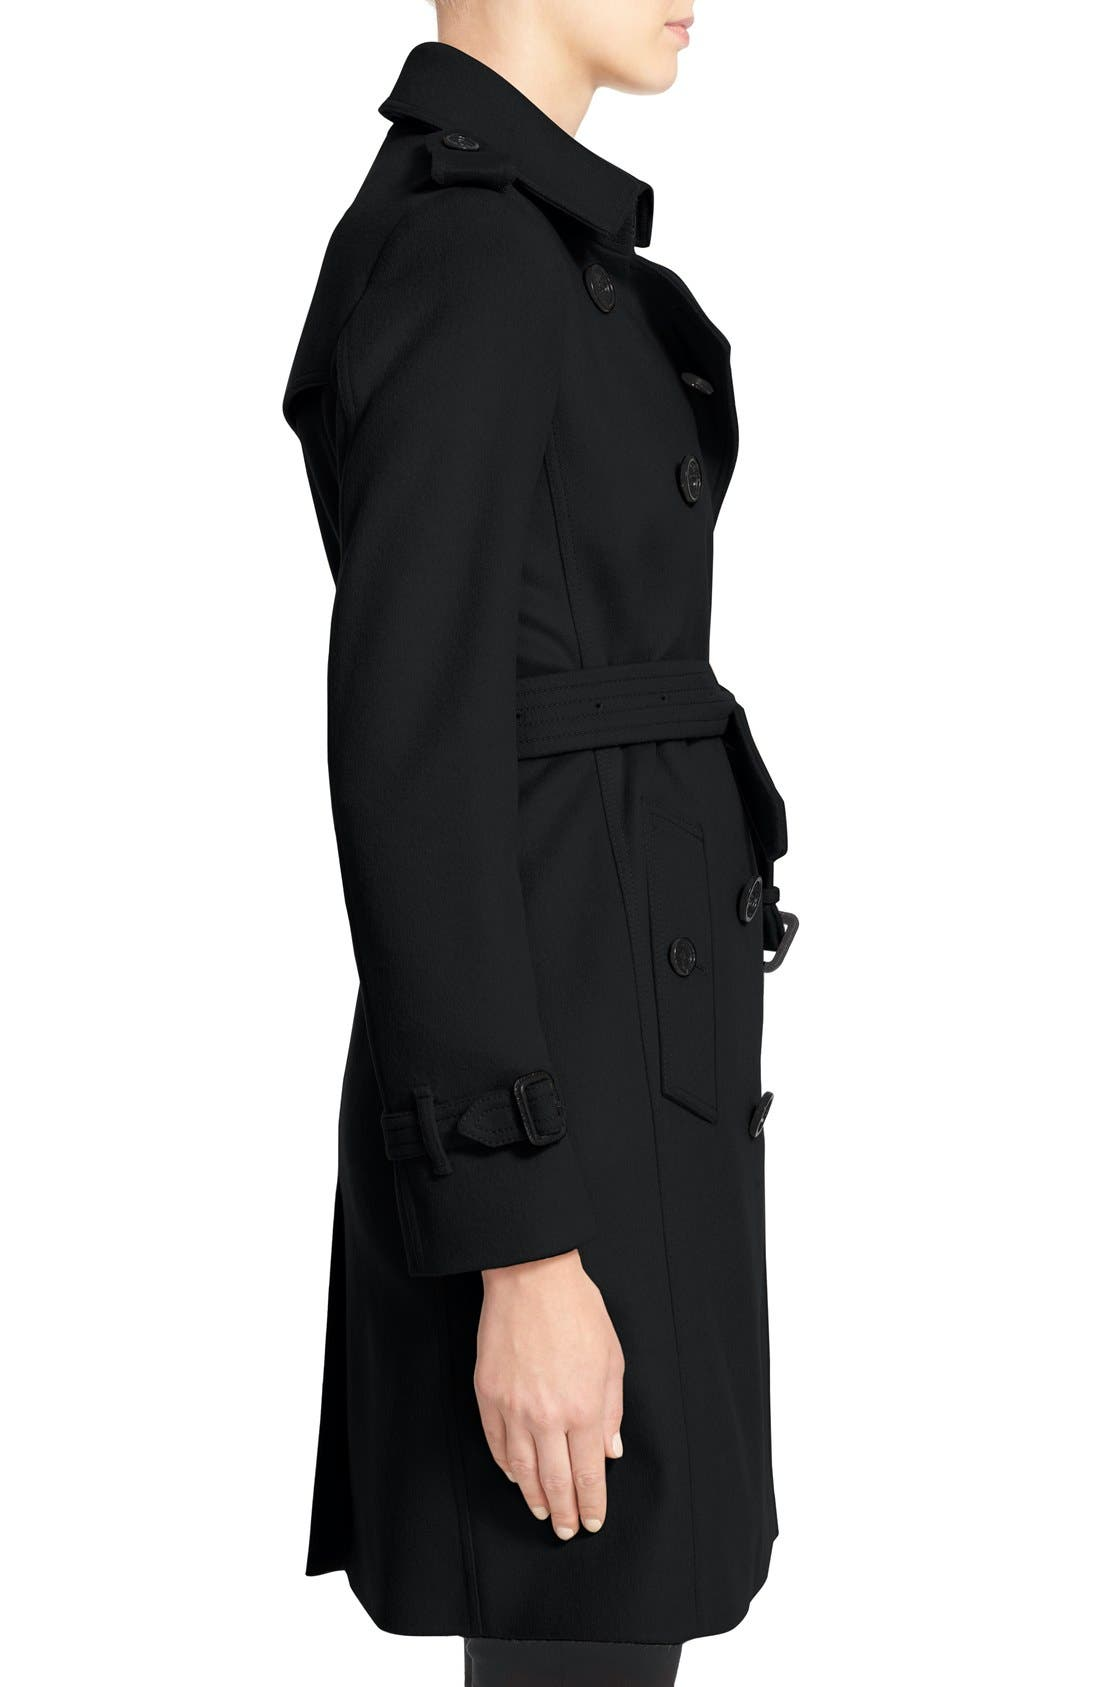 Kensington Double Breasted Wool & Cashmere Trench Coat,                             Alternate thumbnail 5, color,                             001